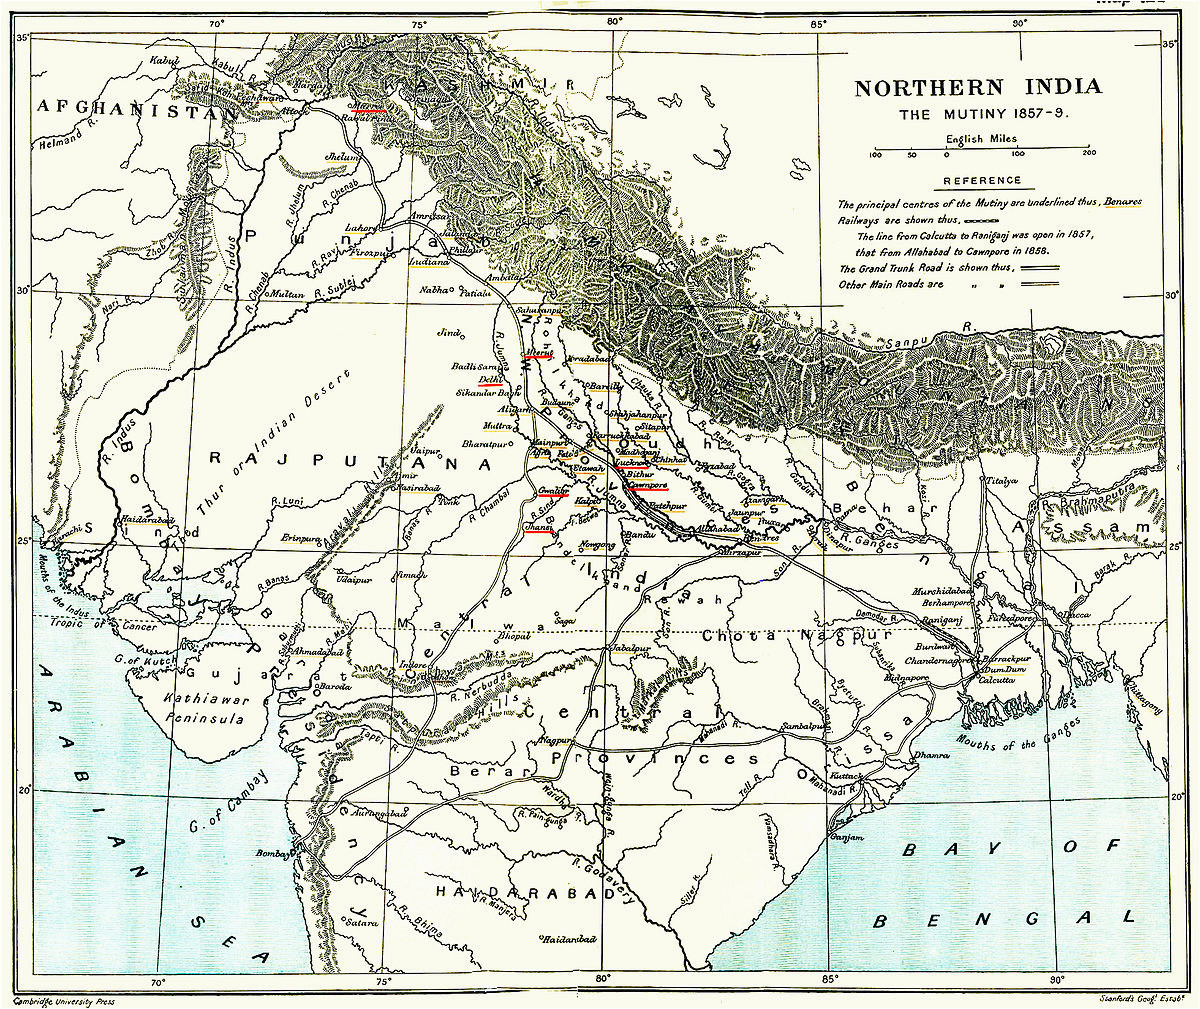 indian rebellion of 1857 wikipedia